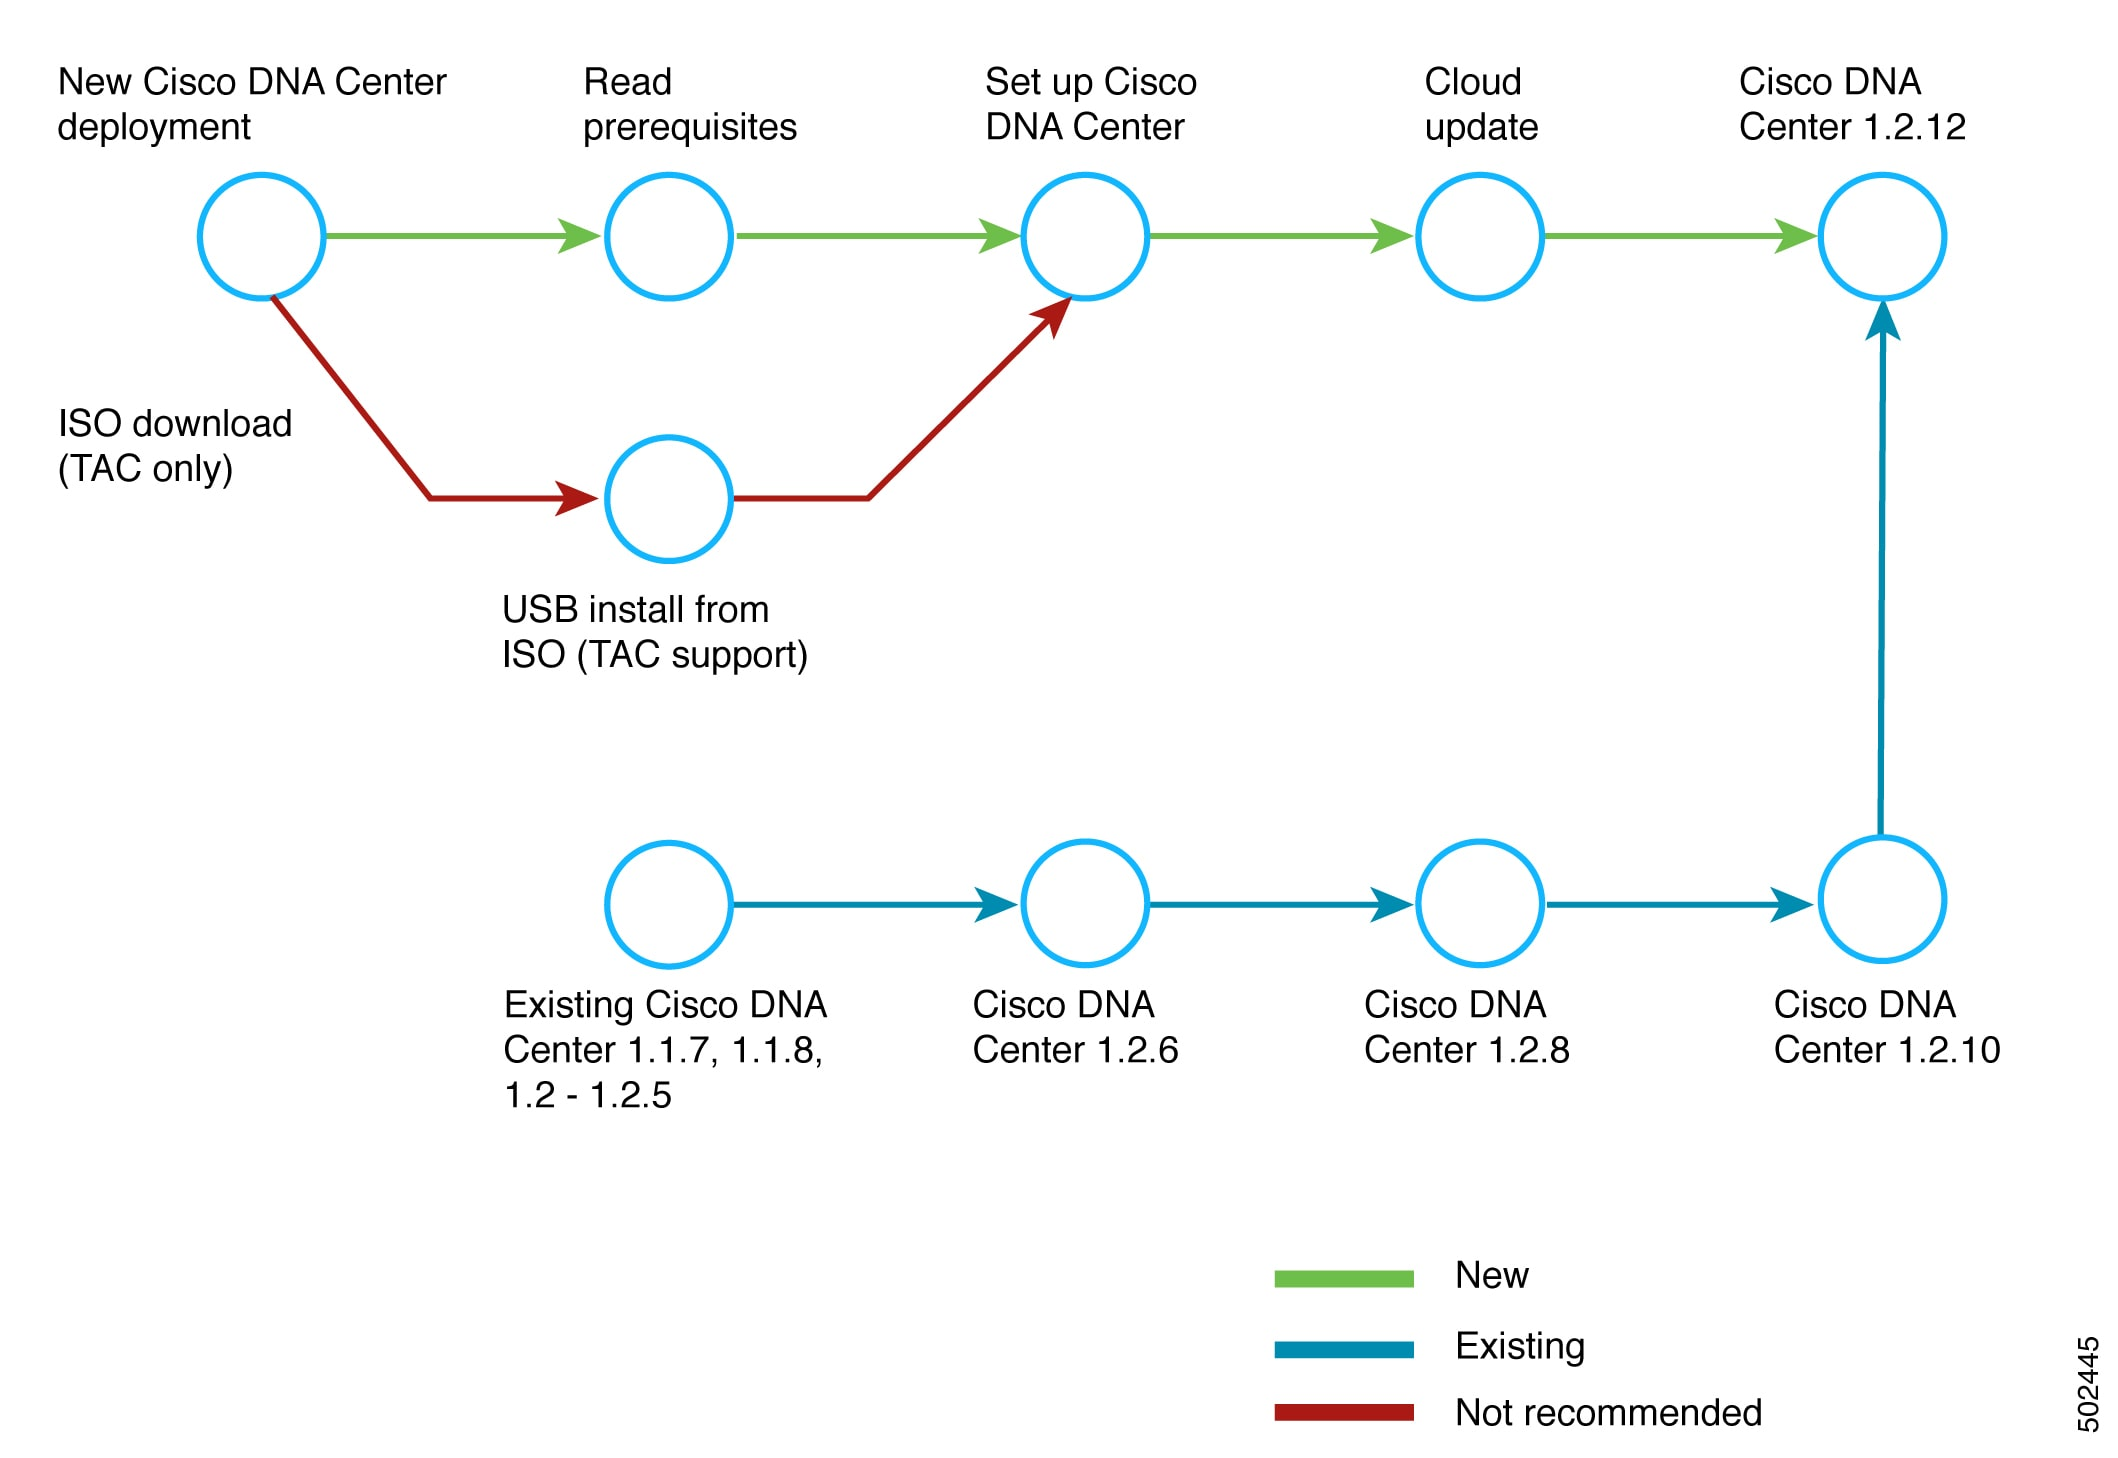 Cisco Digital Network Architecture Center Upgrade Guide - Cisco